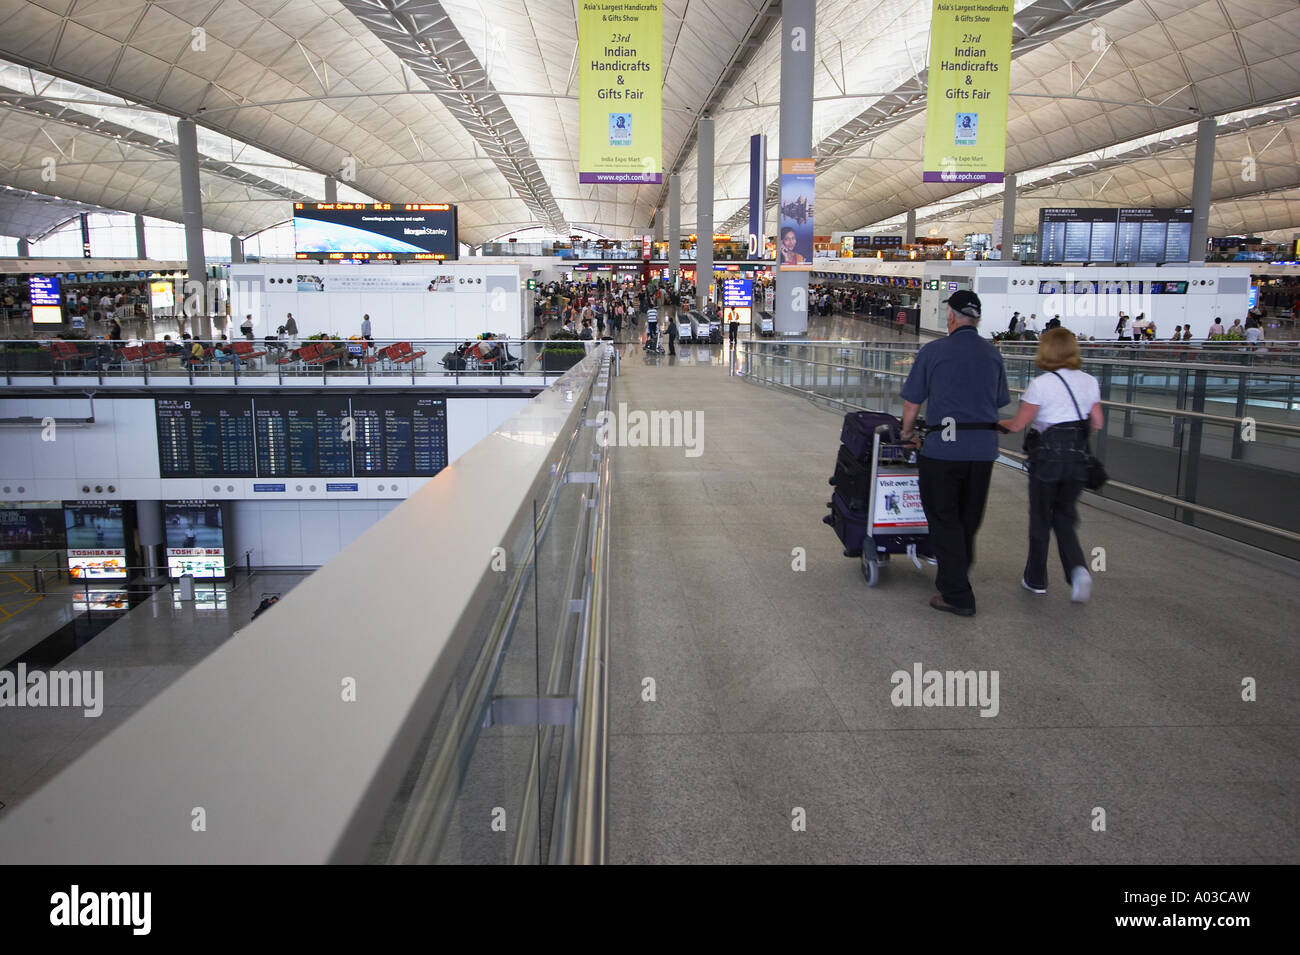 Passengers Walking Into Hong Kong International Airport - Stock Image